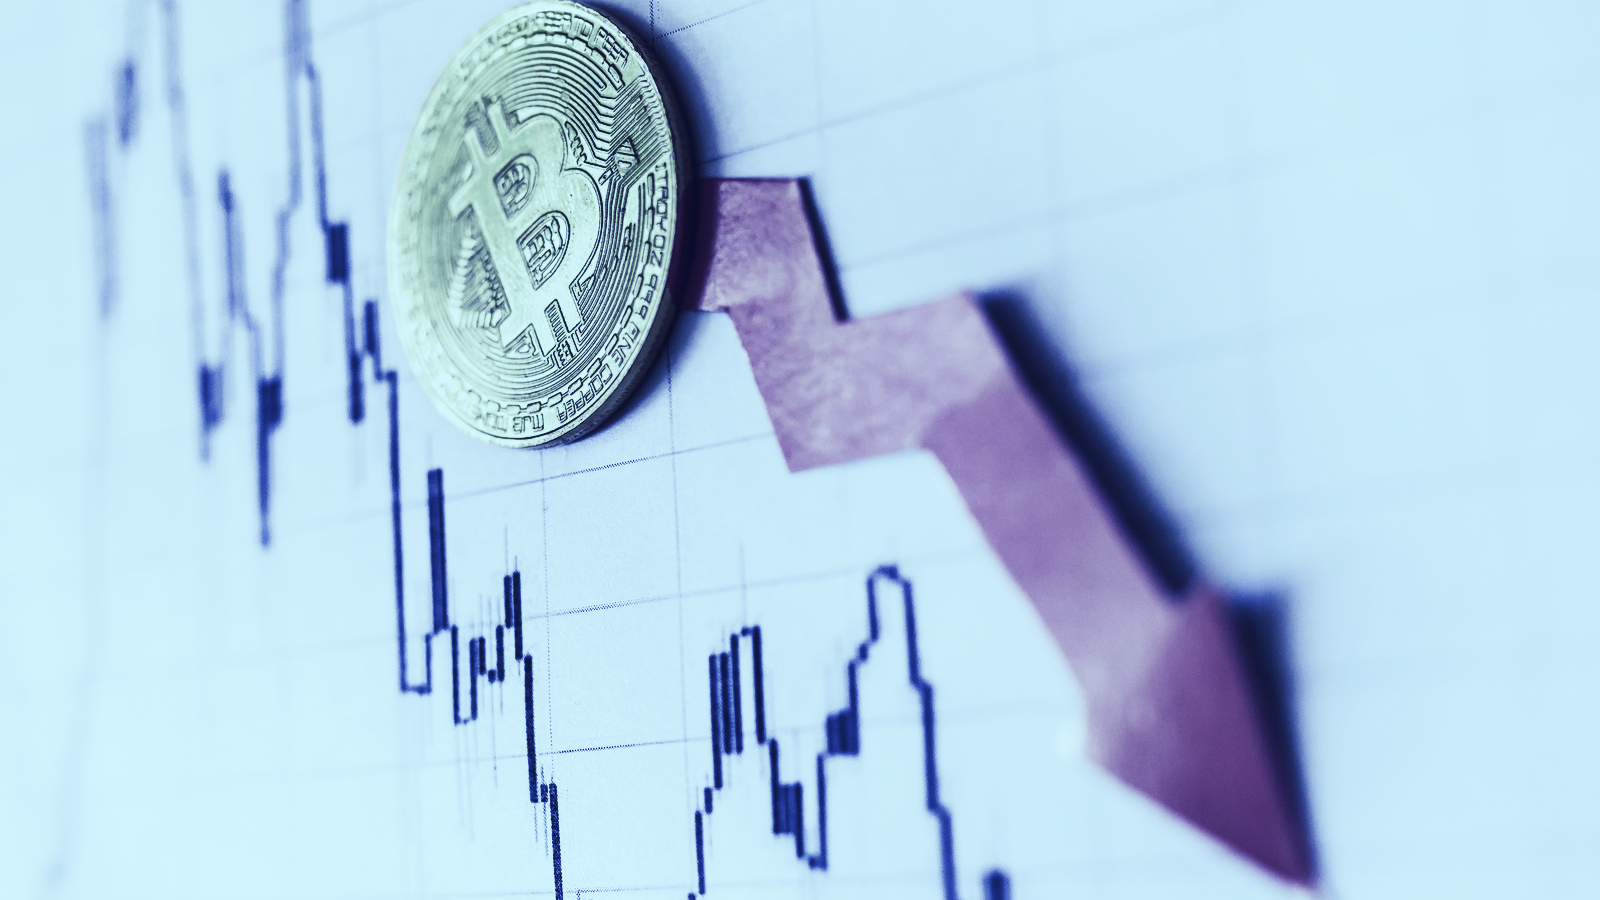 Bitcoin Falls Below $50,000: A Price Correction, or a Result of Biden's Tax Proposal?